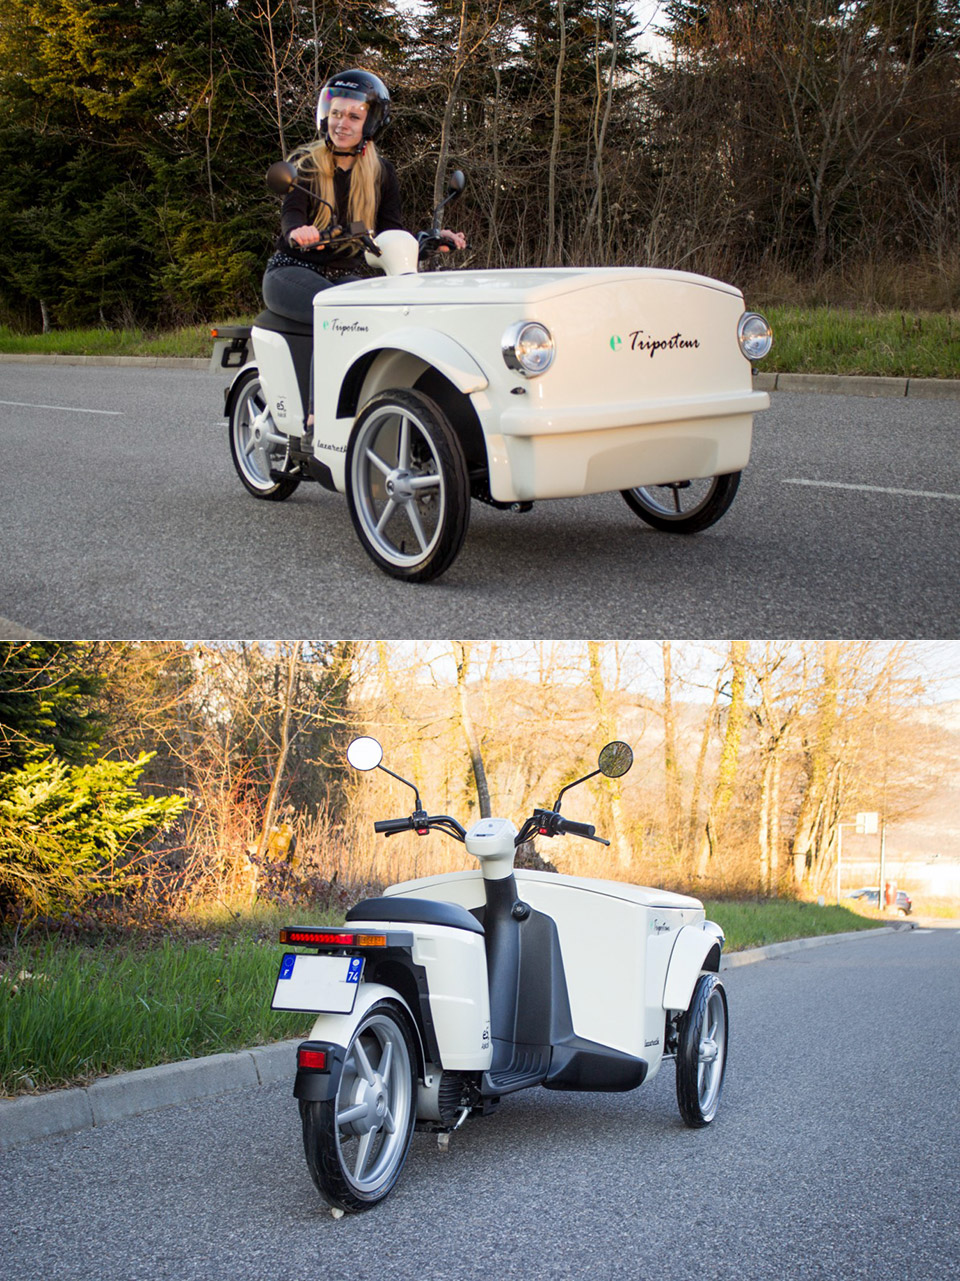 Lazareth e-Triporteur Electric Scooter